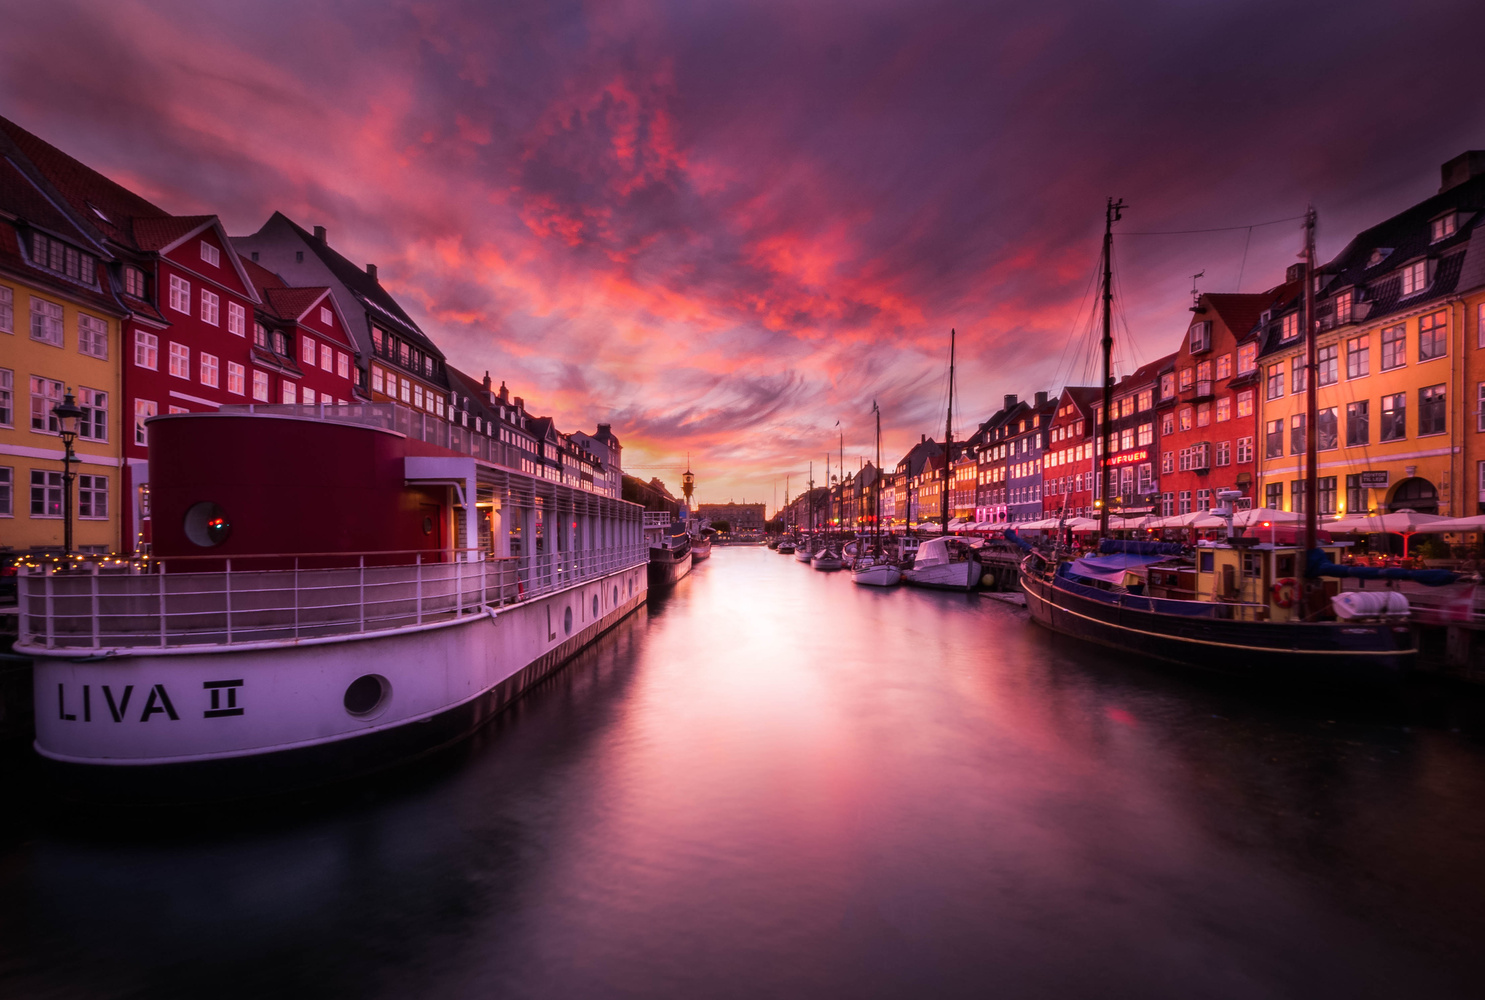 Amazing sky over Nyhavn  by David Wan